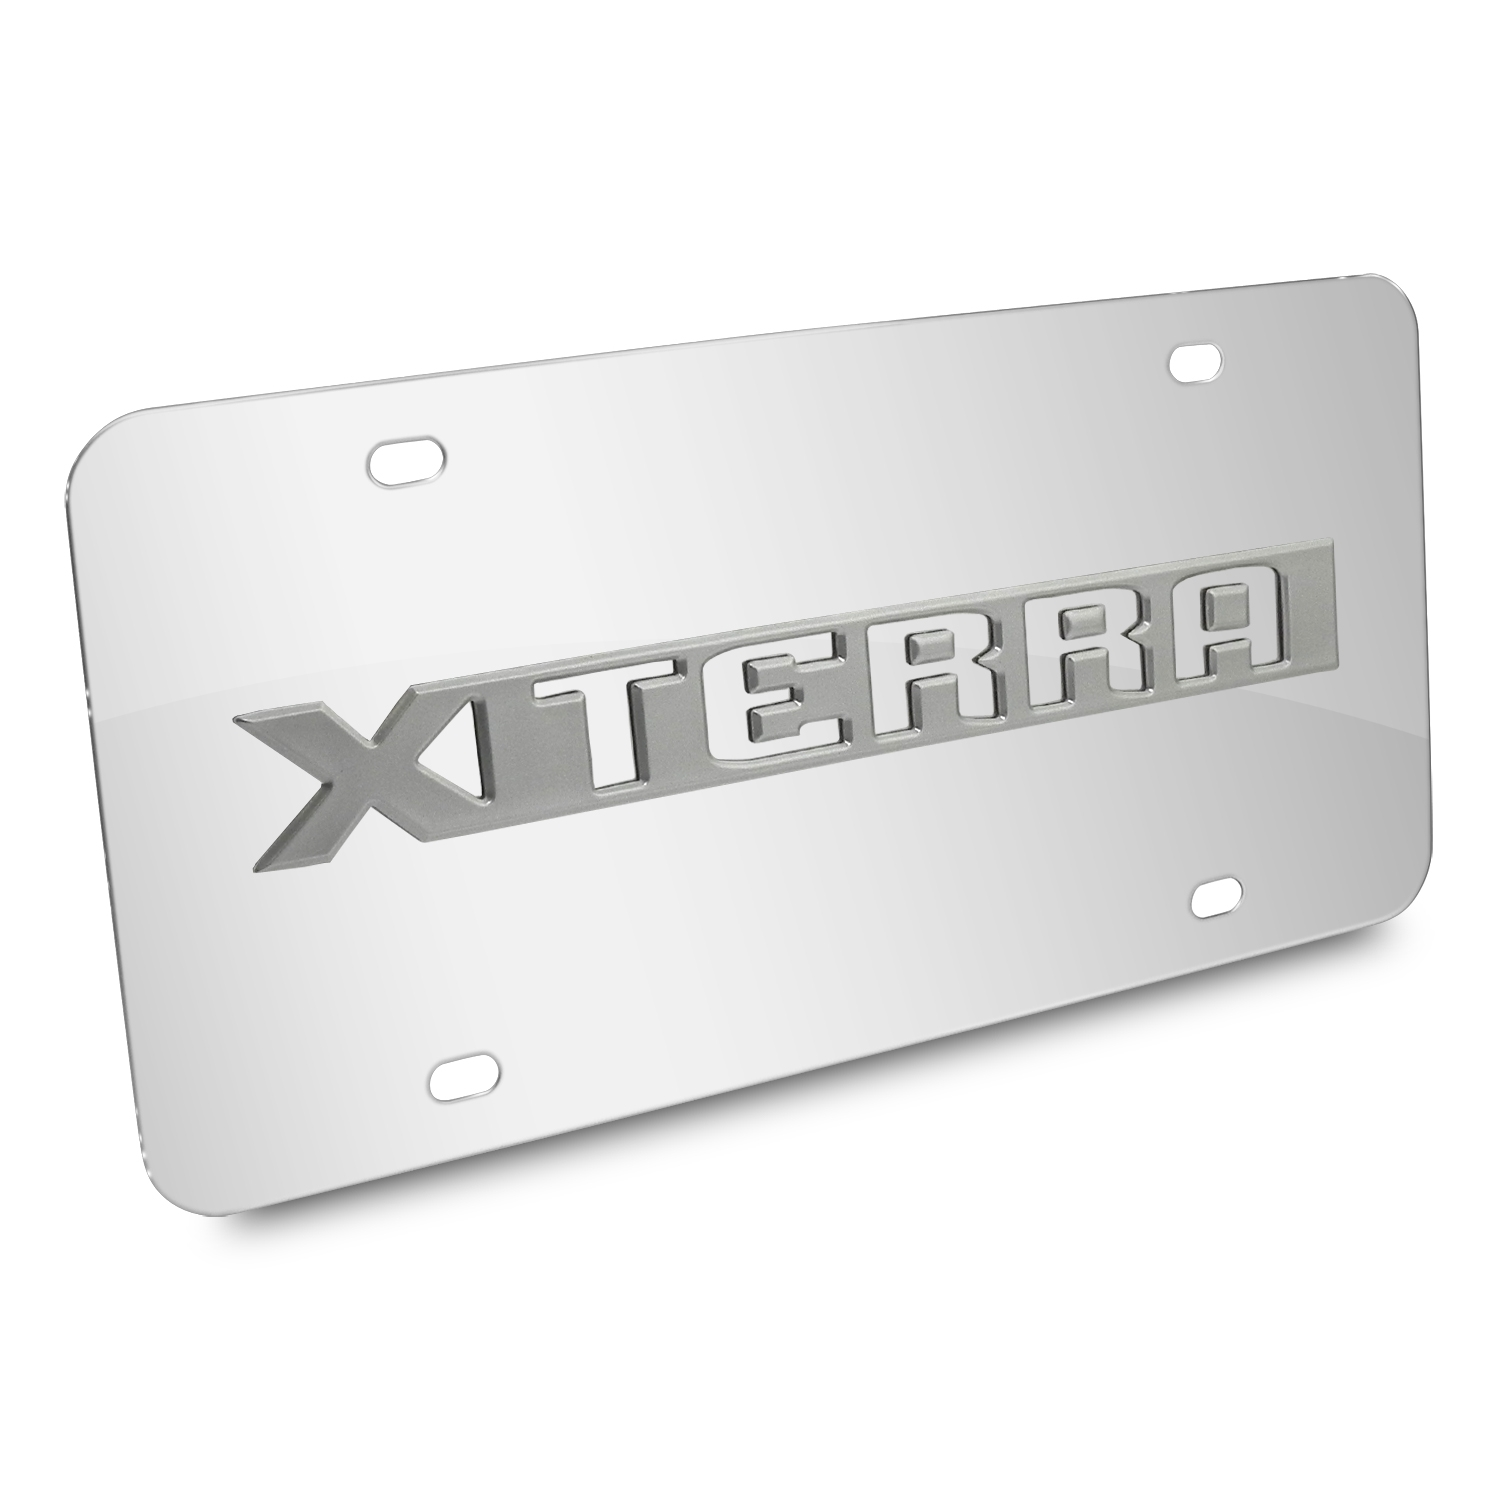 Nissan Xterra Nameplate 3D Logo Chrome Stainless Steel License Plate